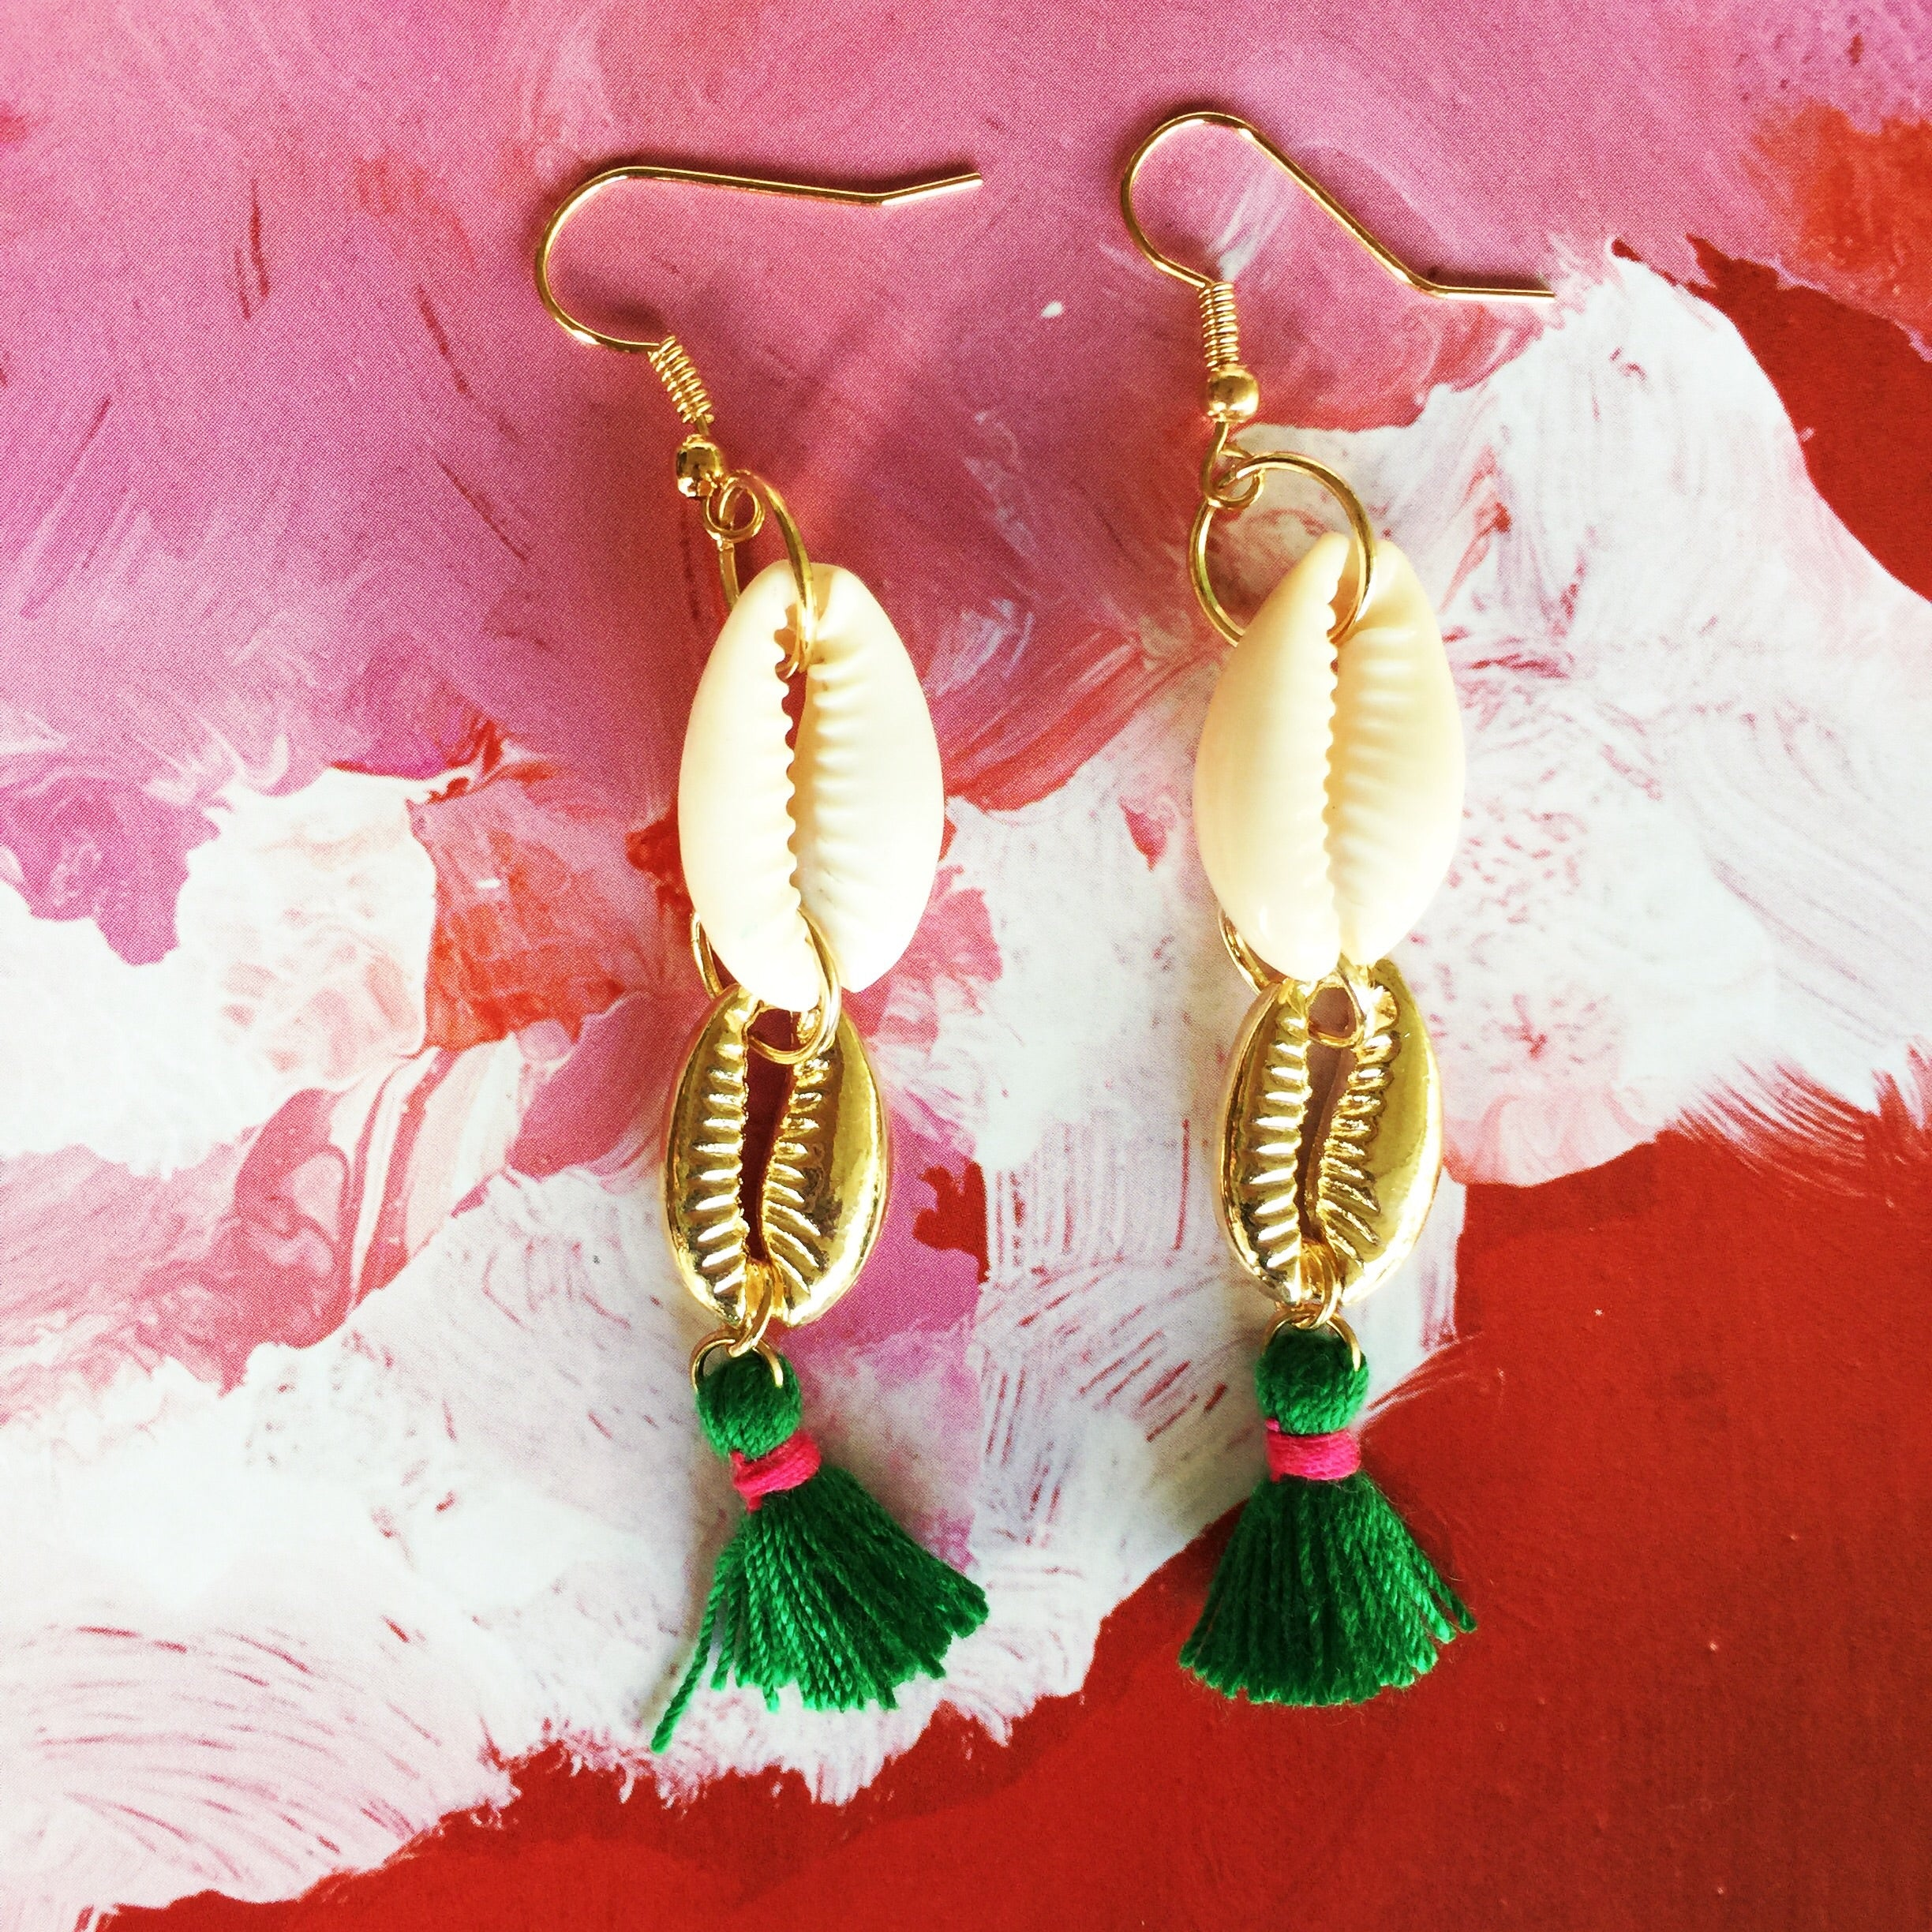 SOLD OUT‼️Seashell Earrings |Cowrie Shell|Green - Honorooroo Lifestyle